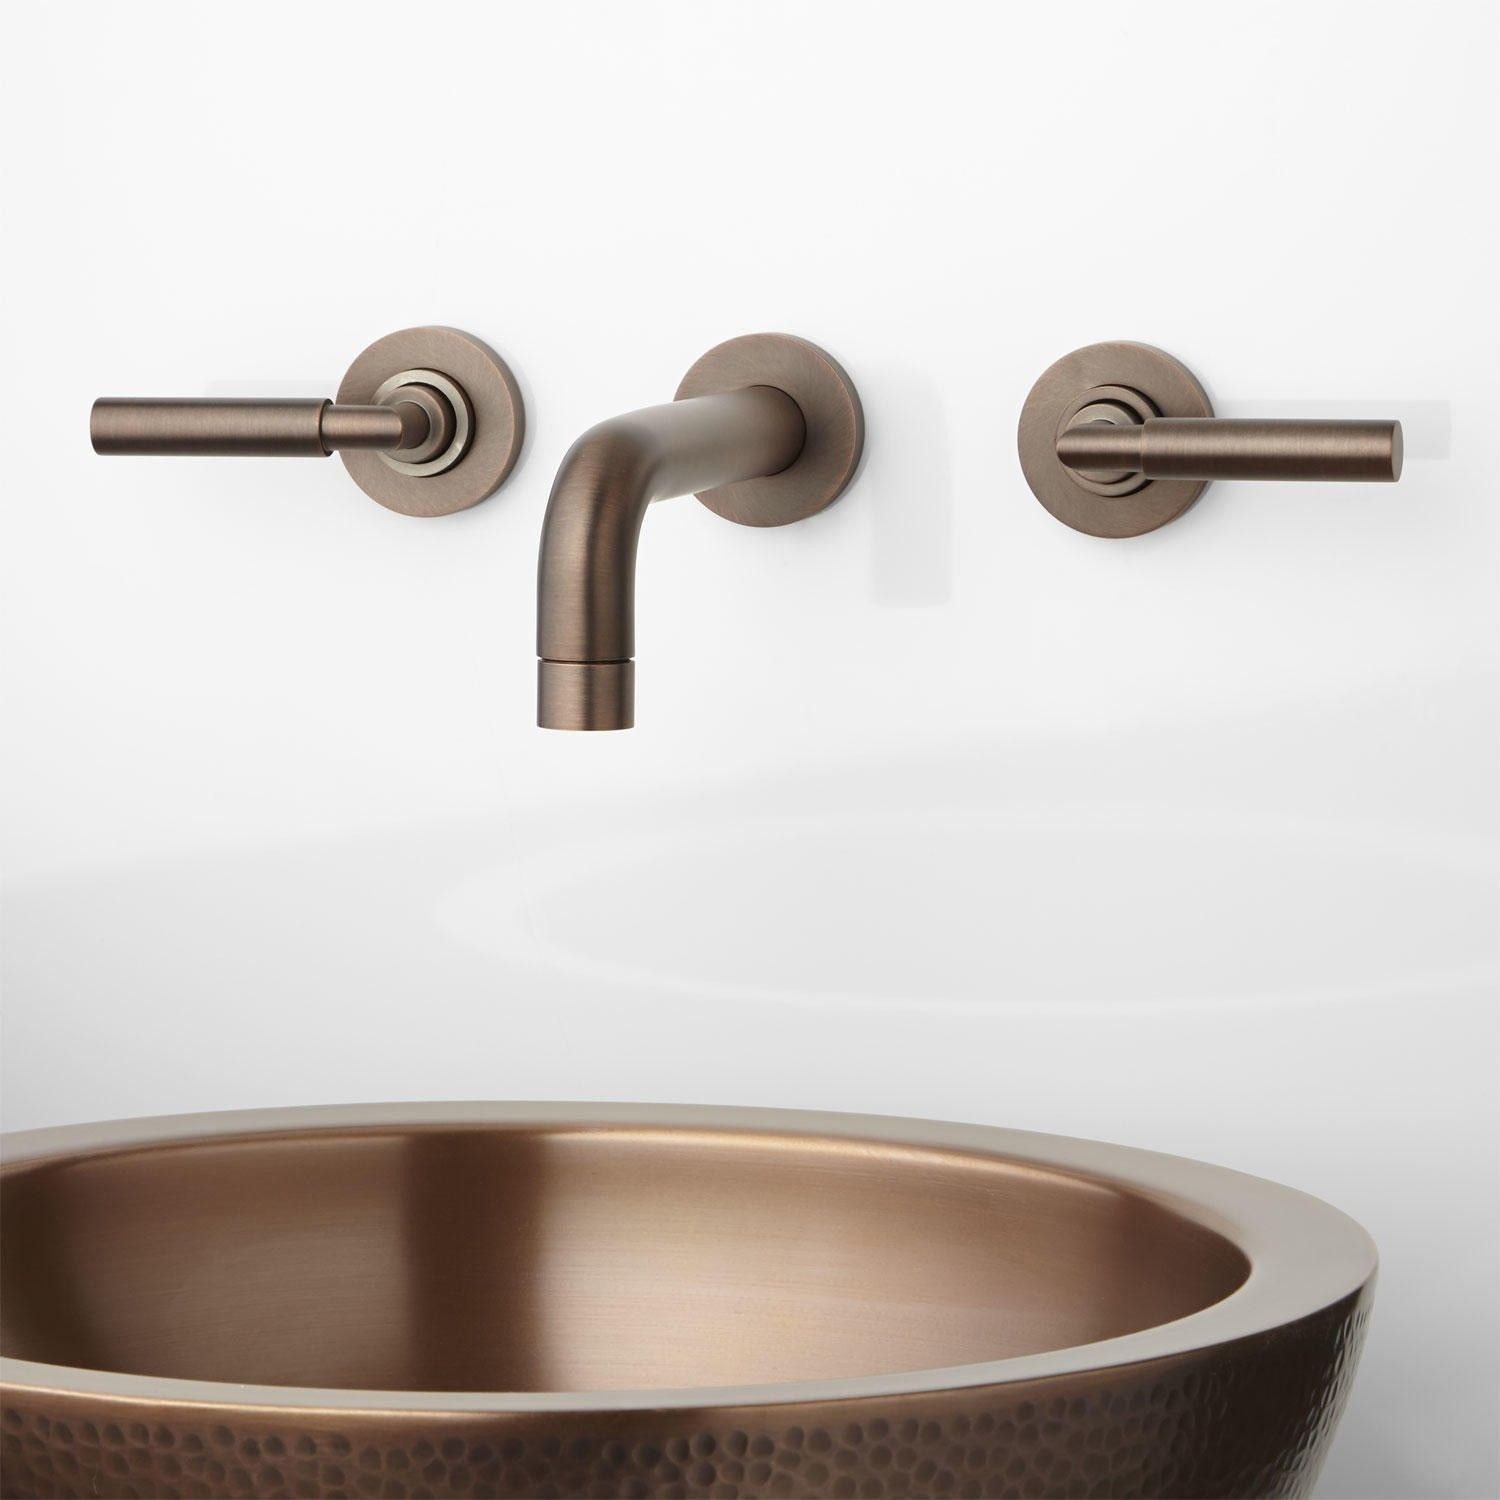 Wall Mounted Bathroom Faucets | http://bottomunion.com | Pinterest ...